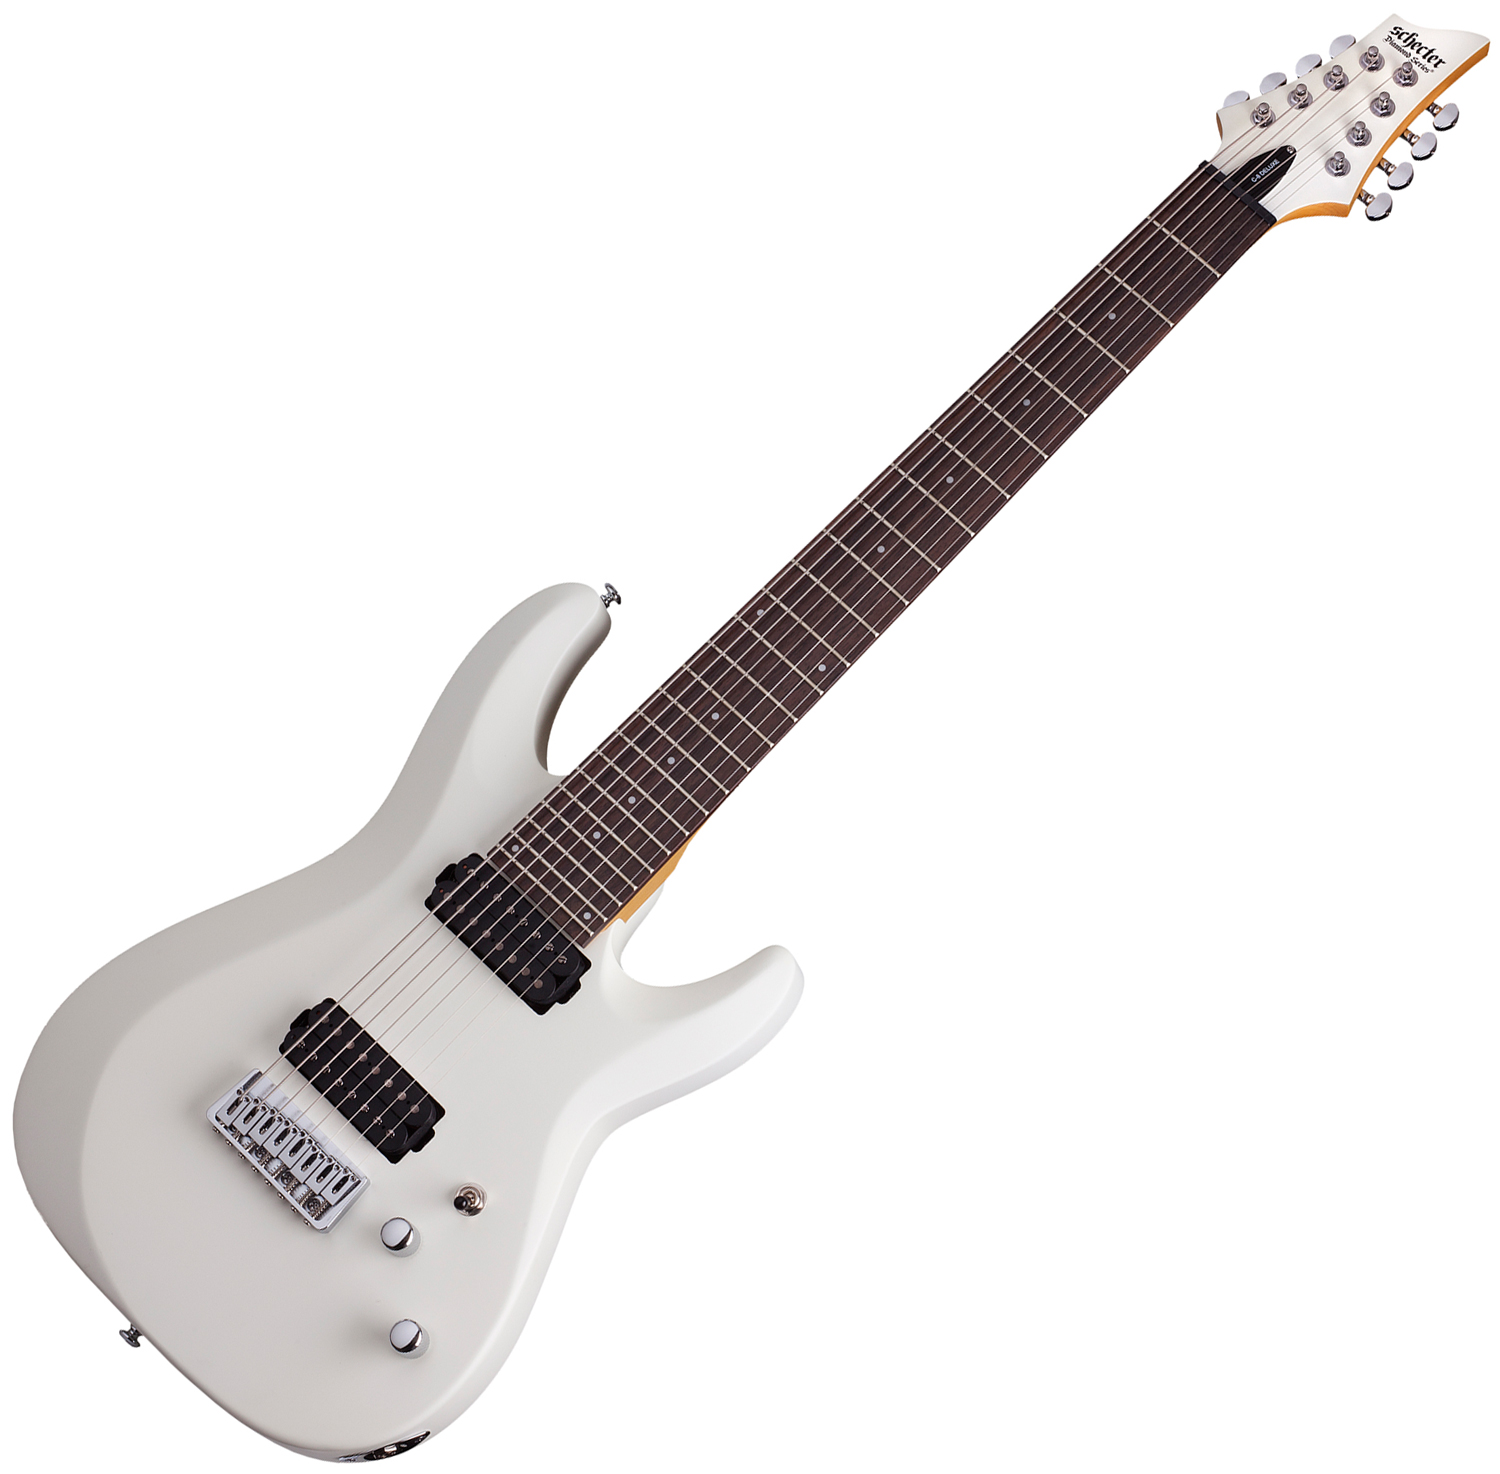 7 and 8 string electric guitars 7 8 and 9 string electric guitar schecter c8 deluxe 8. Black Bedroom Furniture Sets. Home Design Ideas